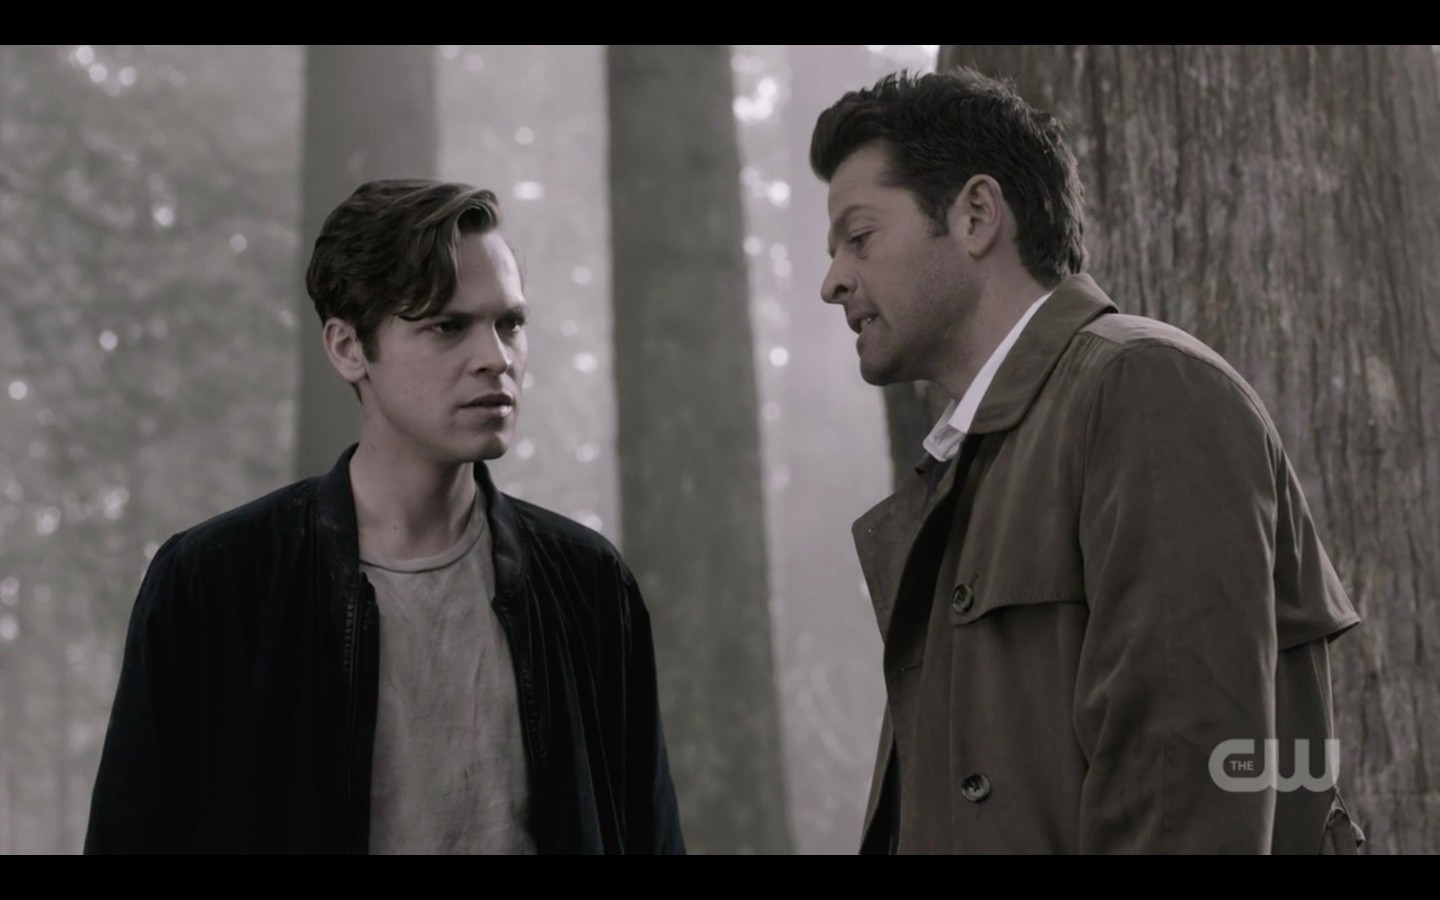 castiel weak for jack supernatural 1321